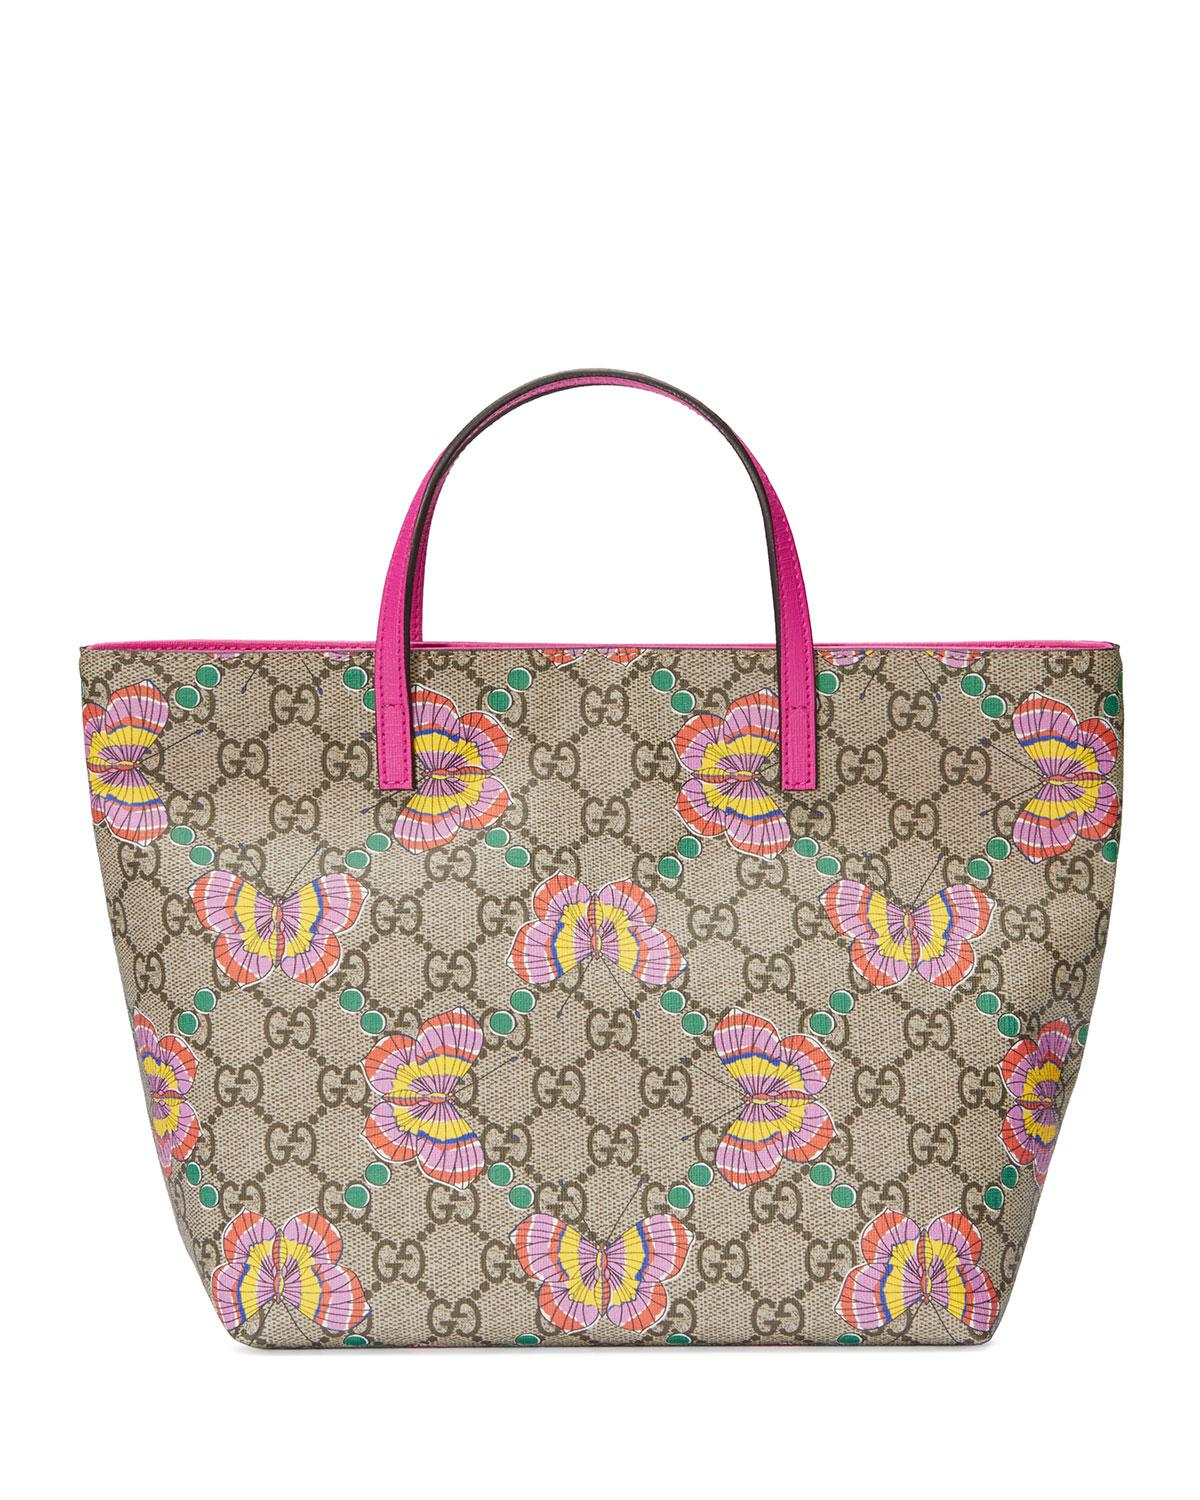 3545549cb79f Gucci Girls' Gg Supreme Butterfly Tote Bag in Natural - Lyst